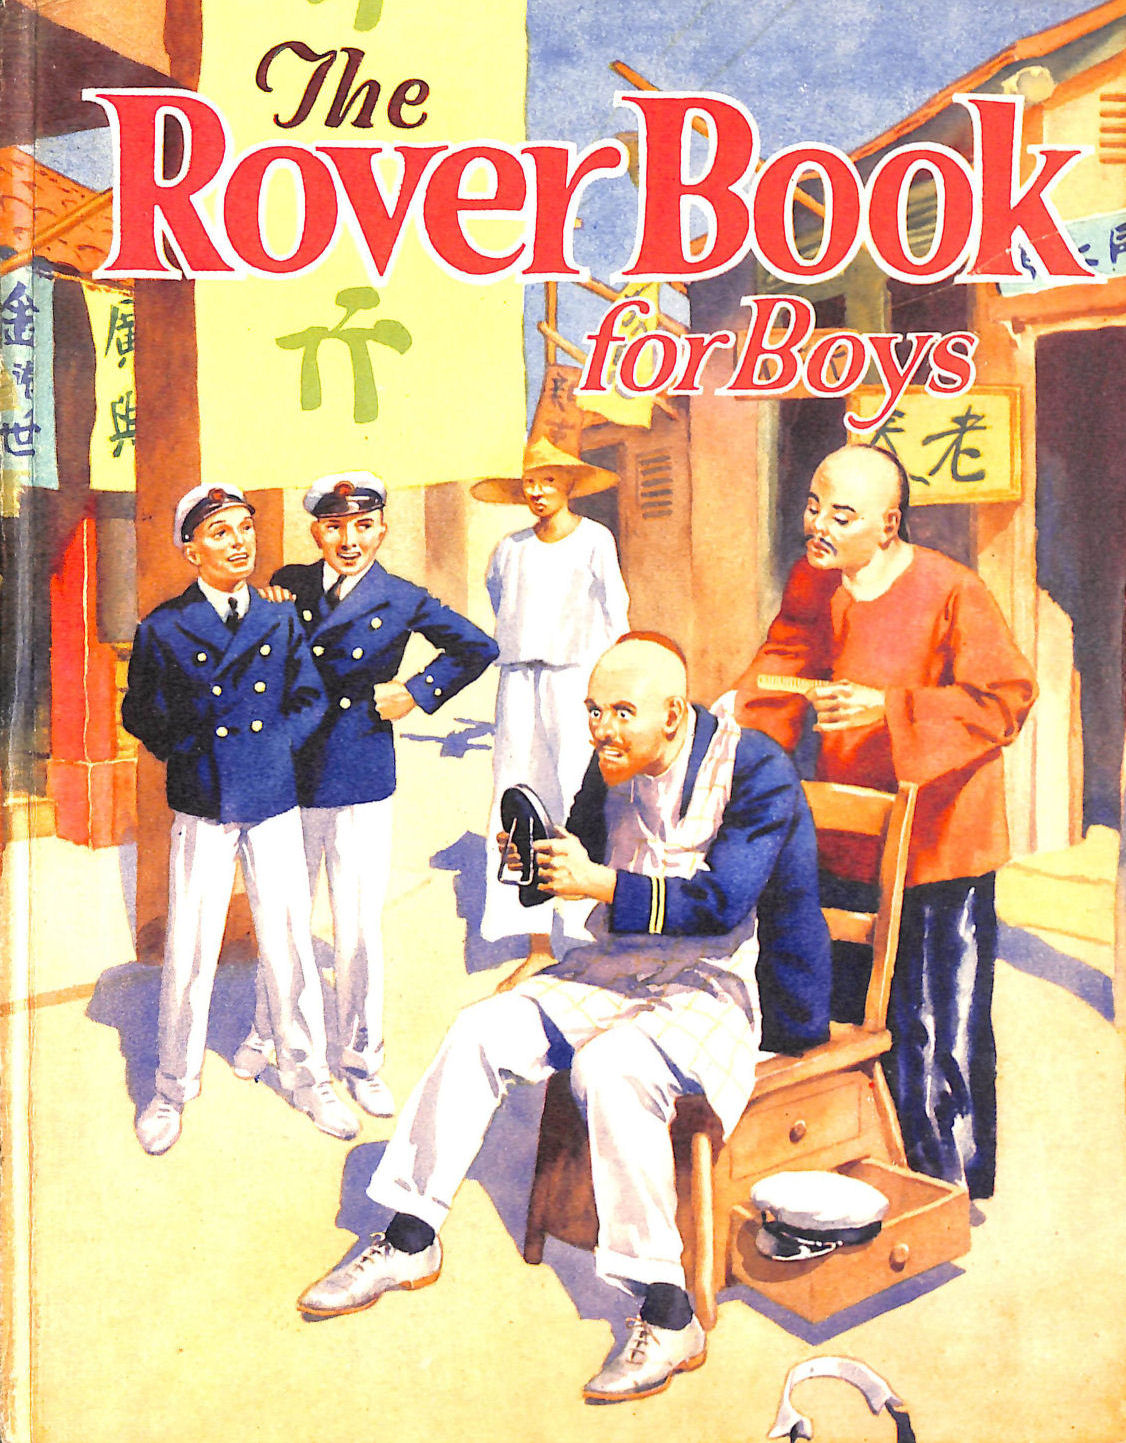 Image for The Rover book for boys (1935)